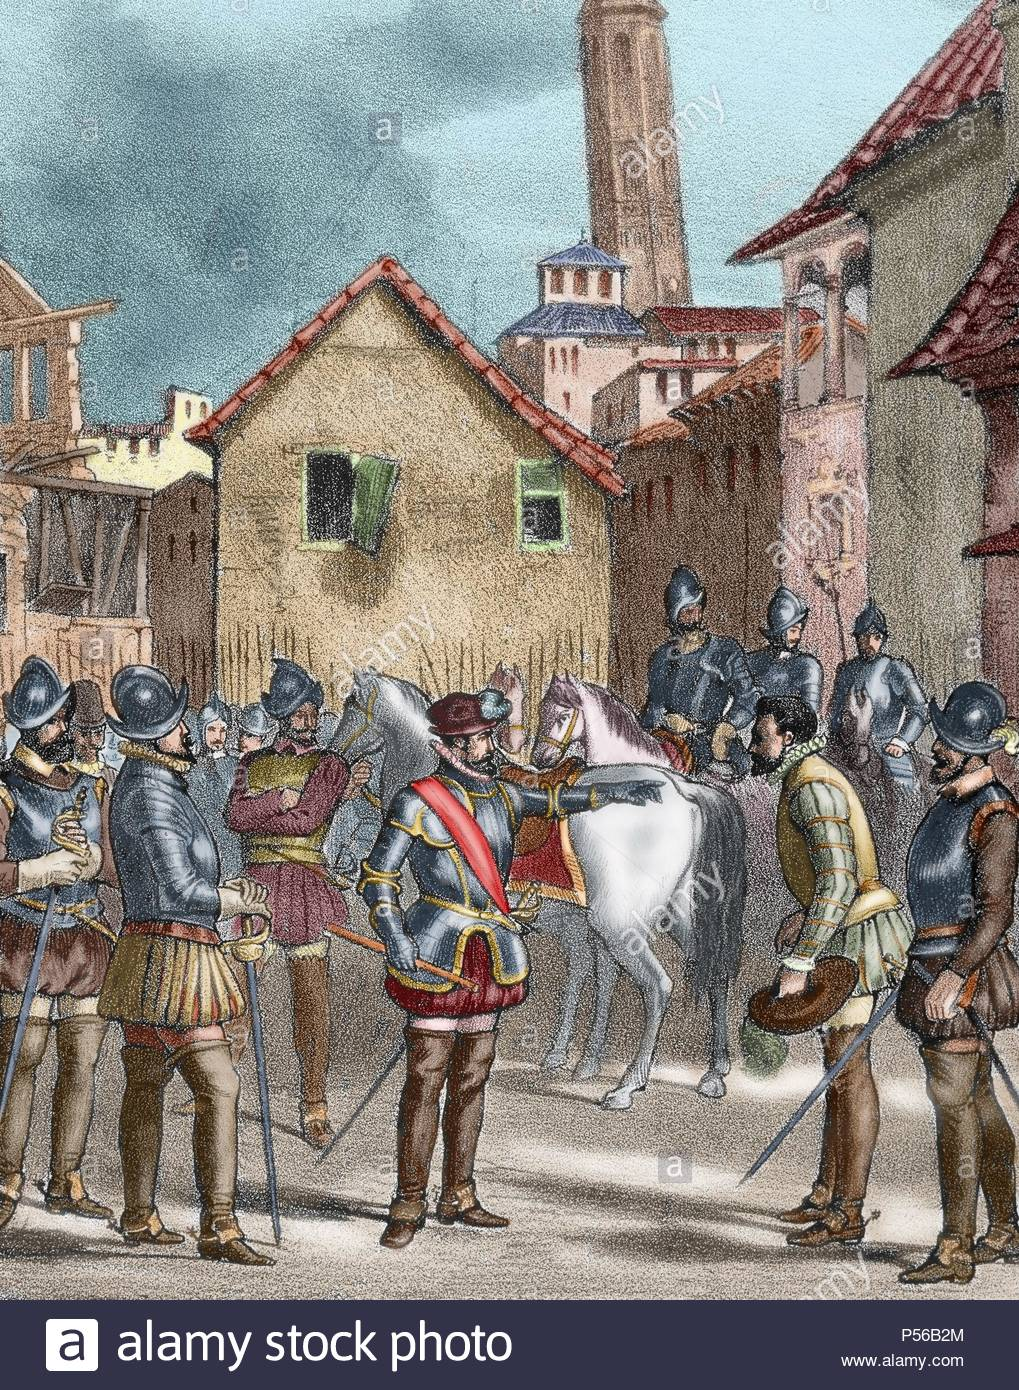 Spain. Aragon. Reign of Philip II. Alterations of Aragon. Entry of Castilian royal troops in Zaragoza (October 1591) that ended the Aragonese uprising. Colored Engraving. 19th century. - Stock Image